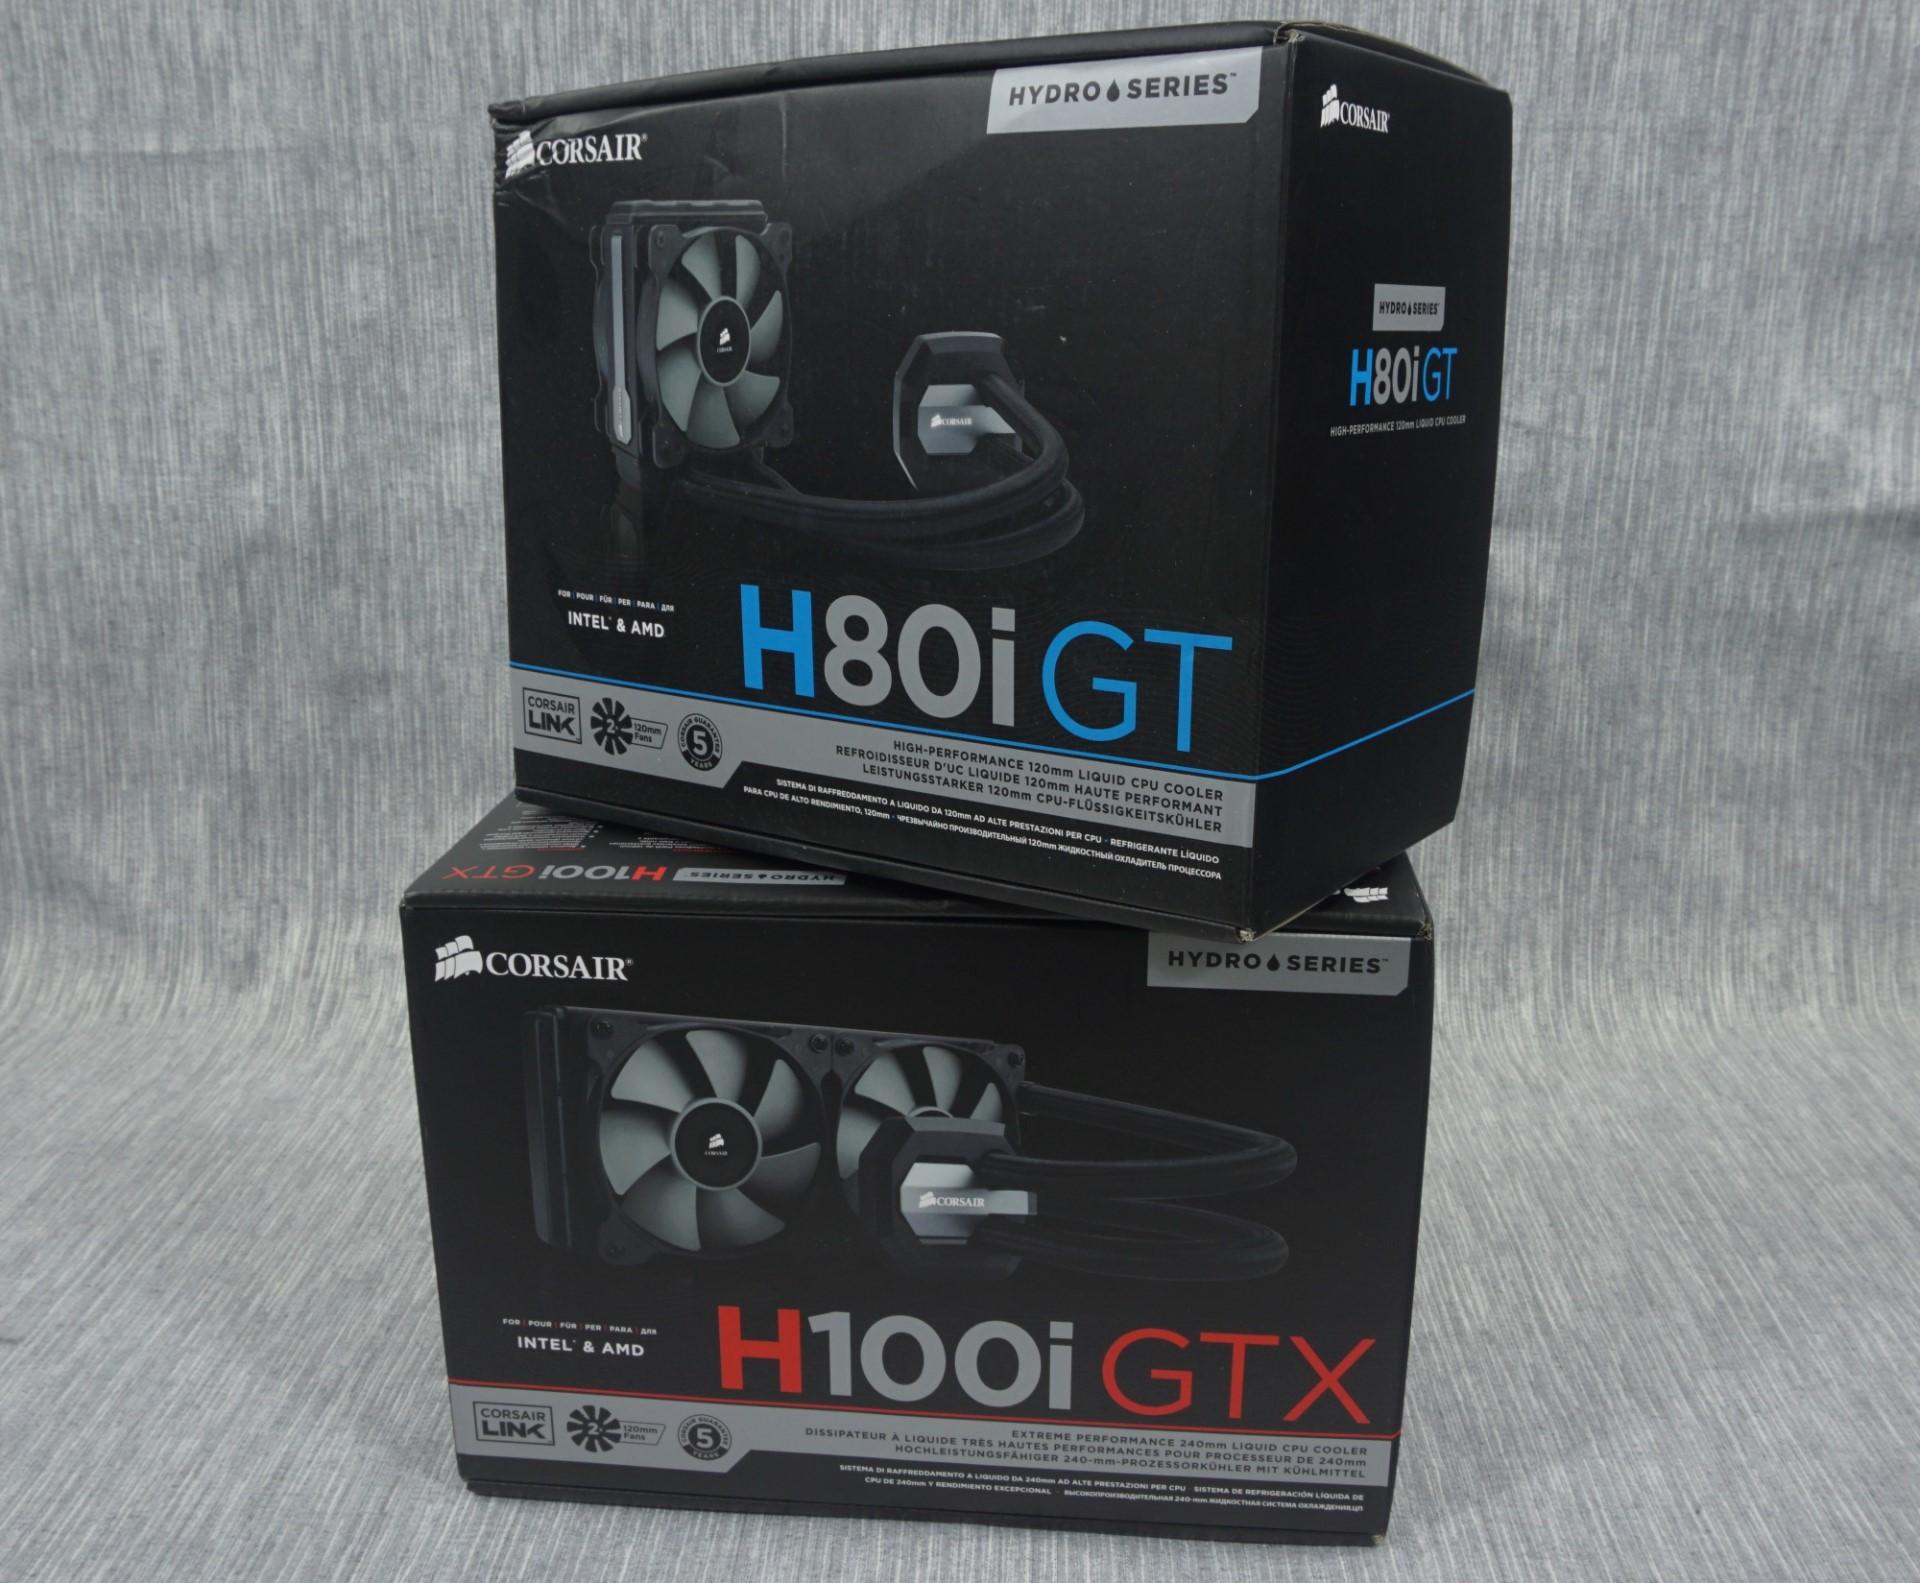 The Corsair H80i GT and H100i GTX AIO Coolers Review